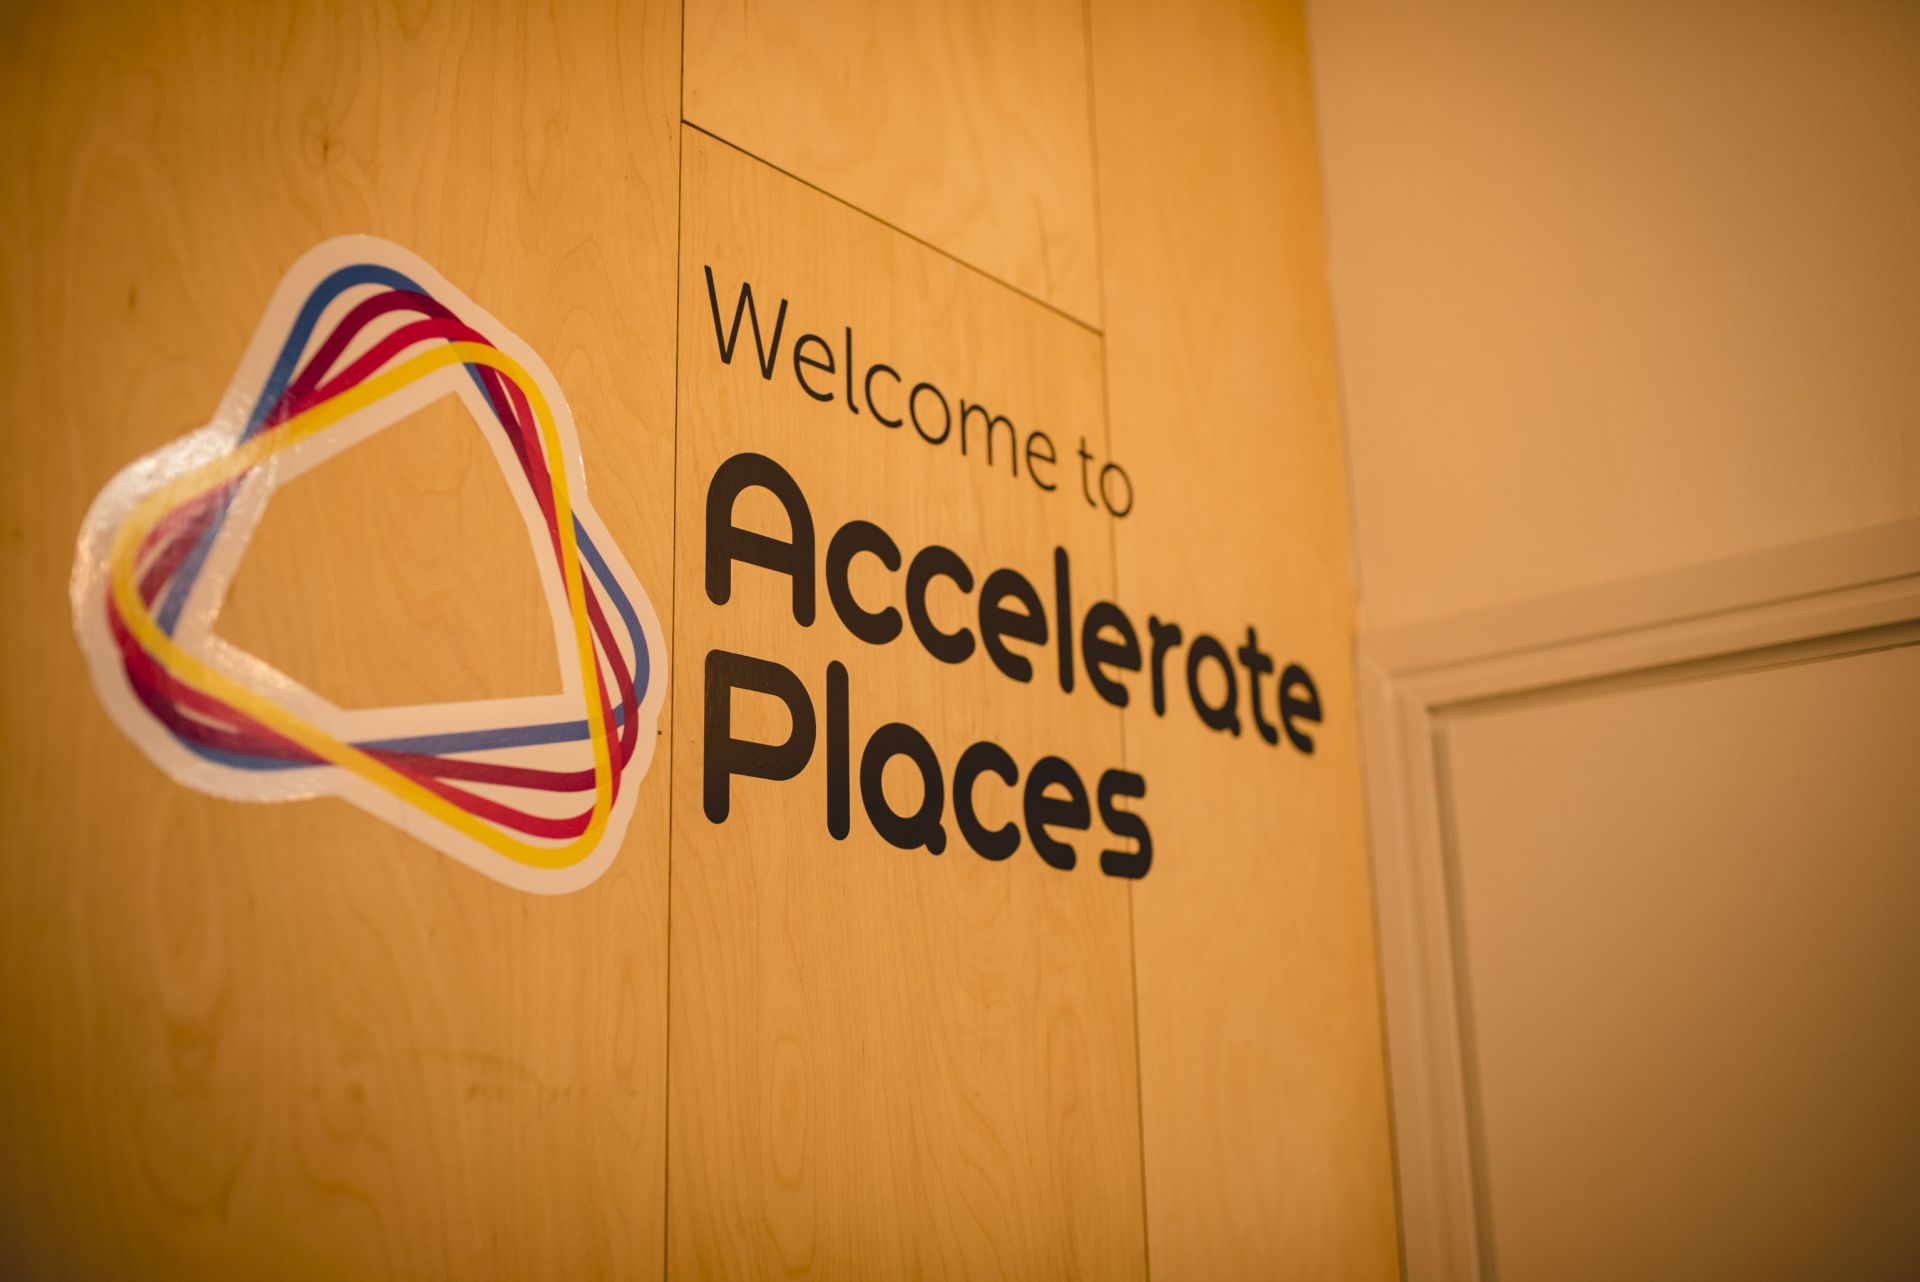 Accelerate Places, Manchester